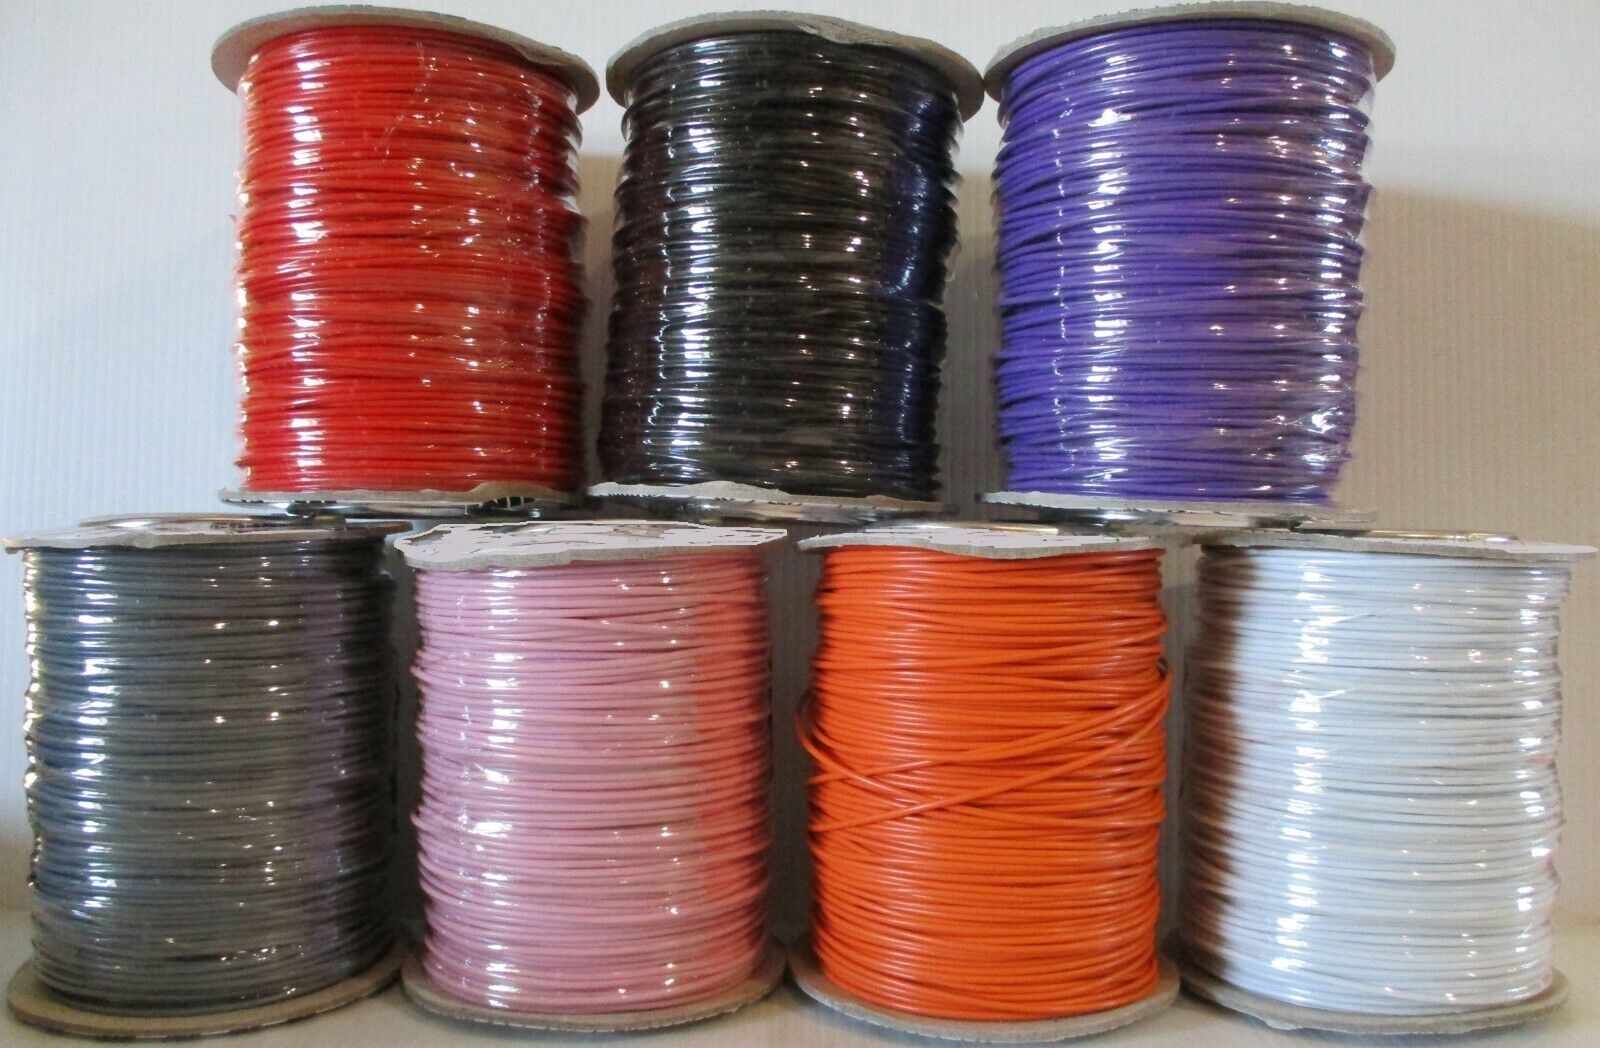 PURPLE Model Railway Layout Wire 100m Roll 7//0.2mm 1.4A PICK YOUR OWN LENGTH